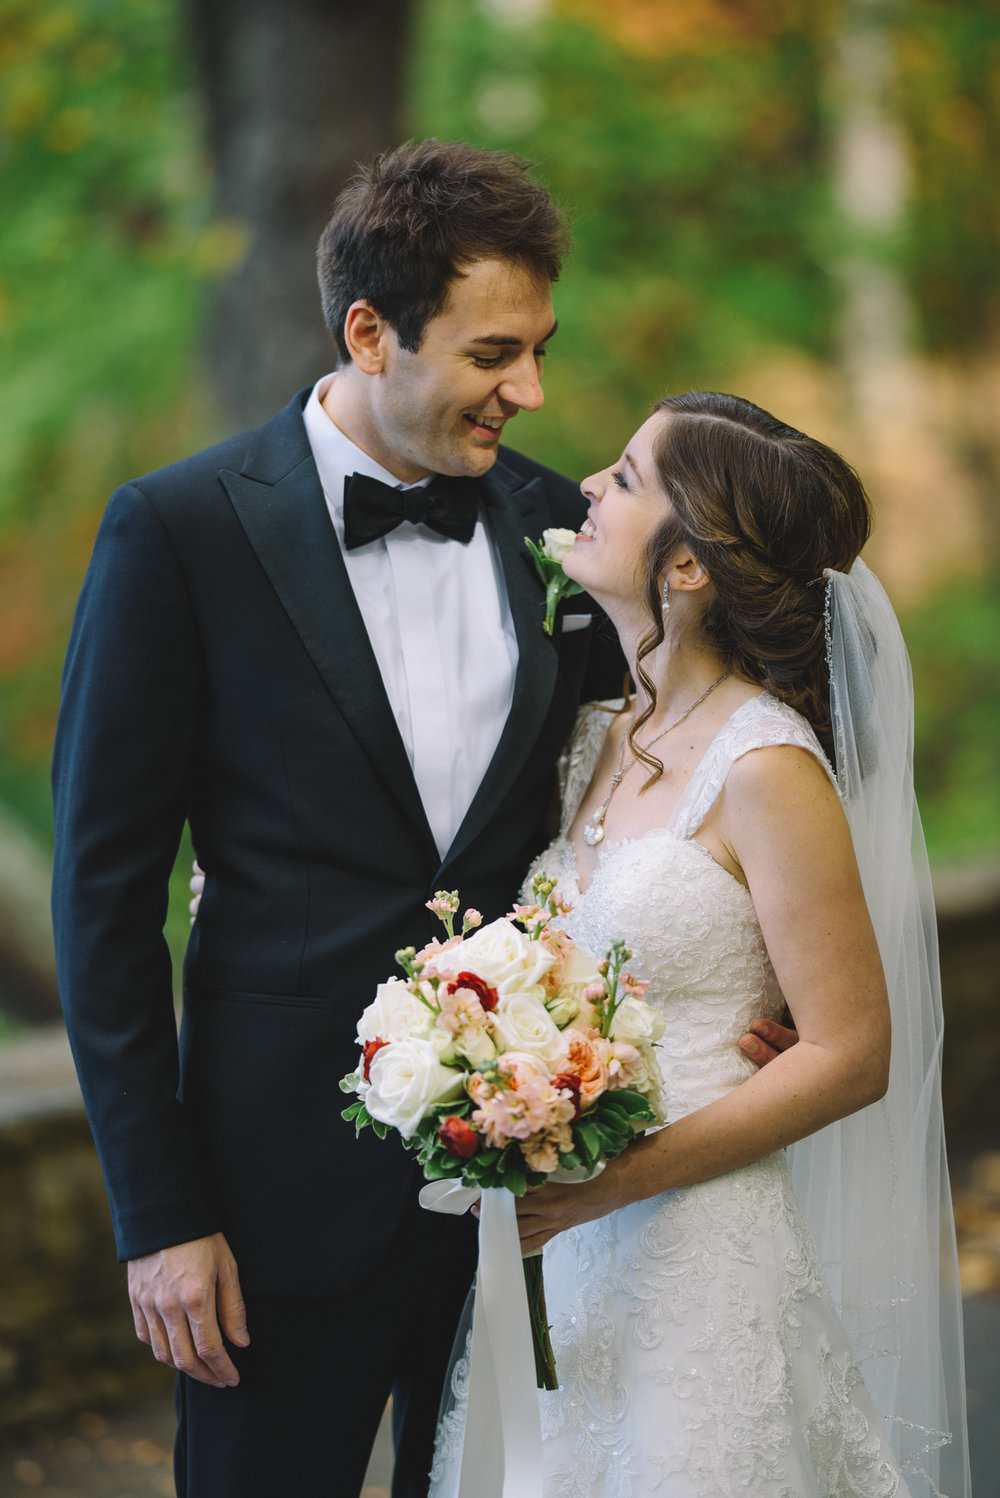 Rachel + Ryan Big Canoe Wedding Photography